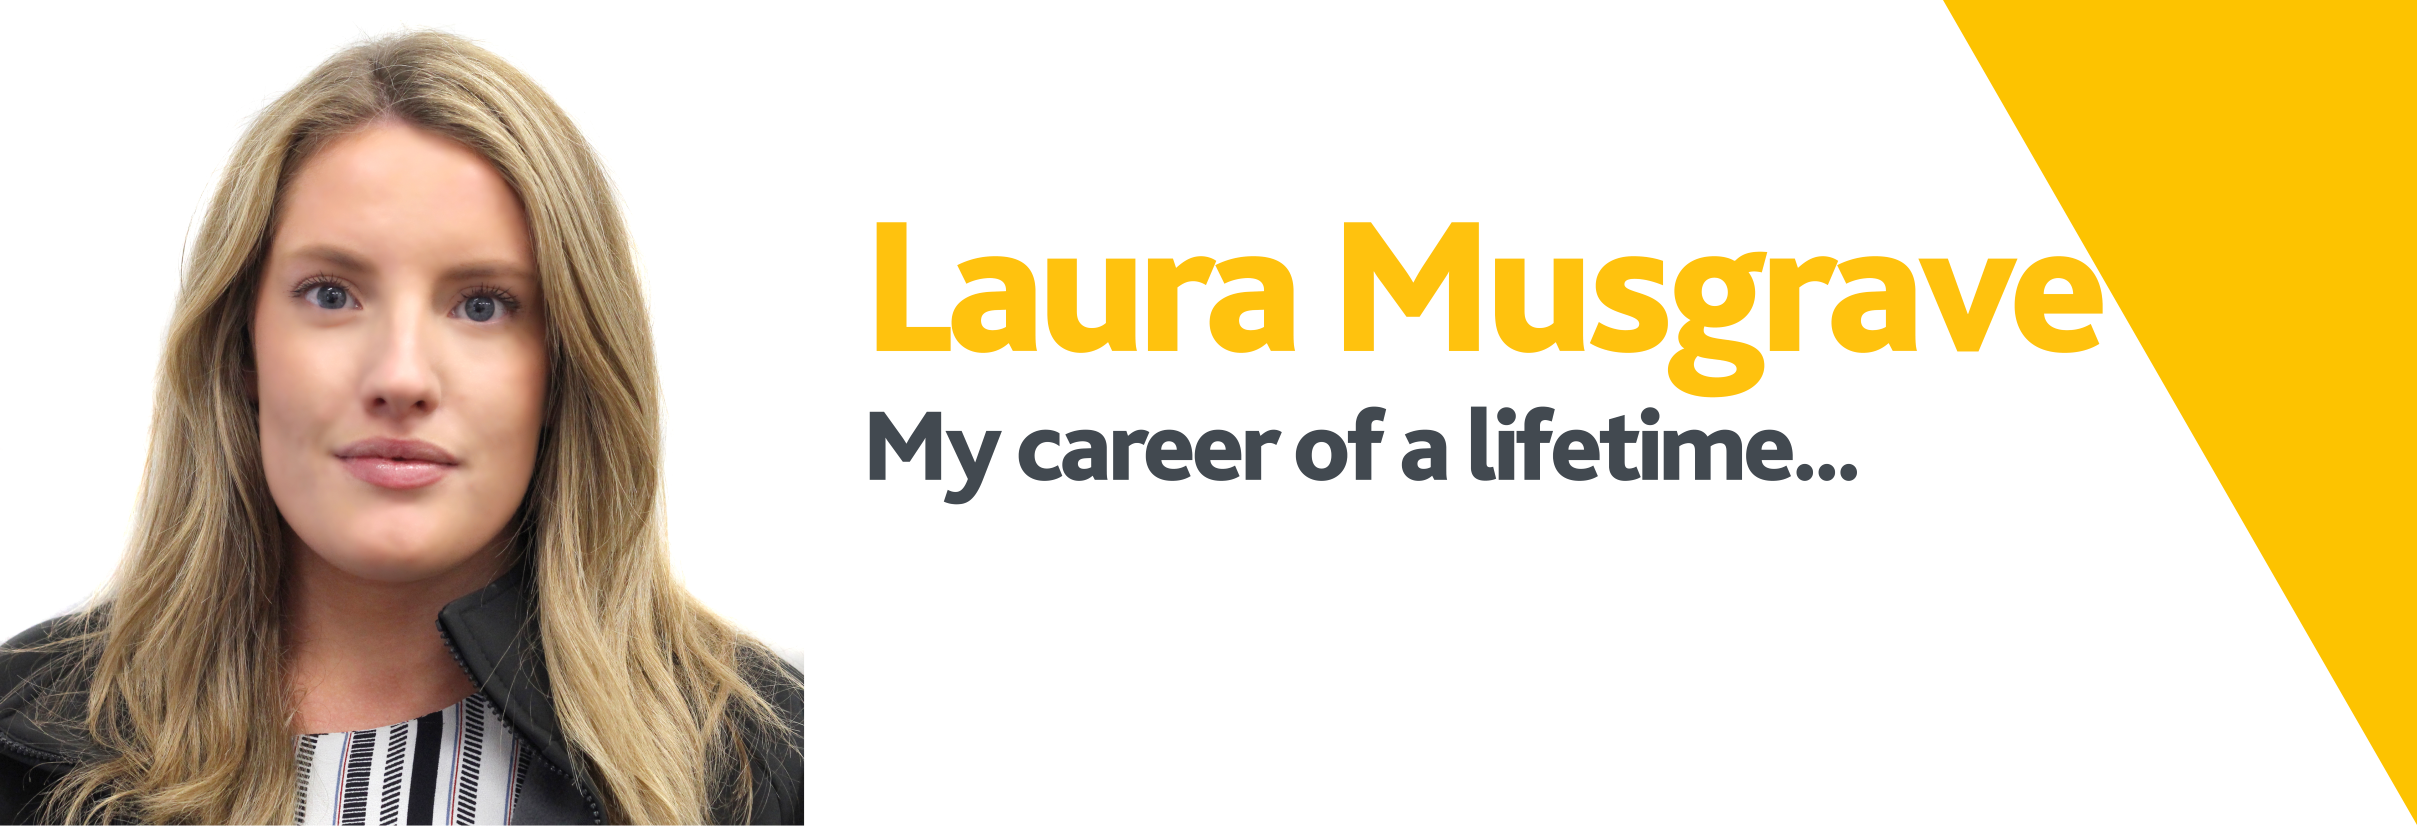 Career of a lifetime - Laura Musgrave.png